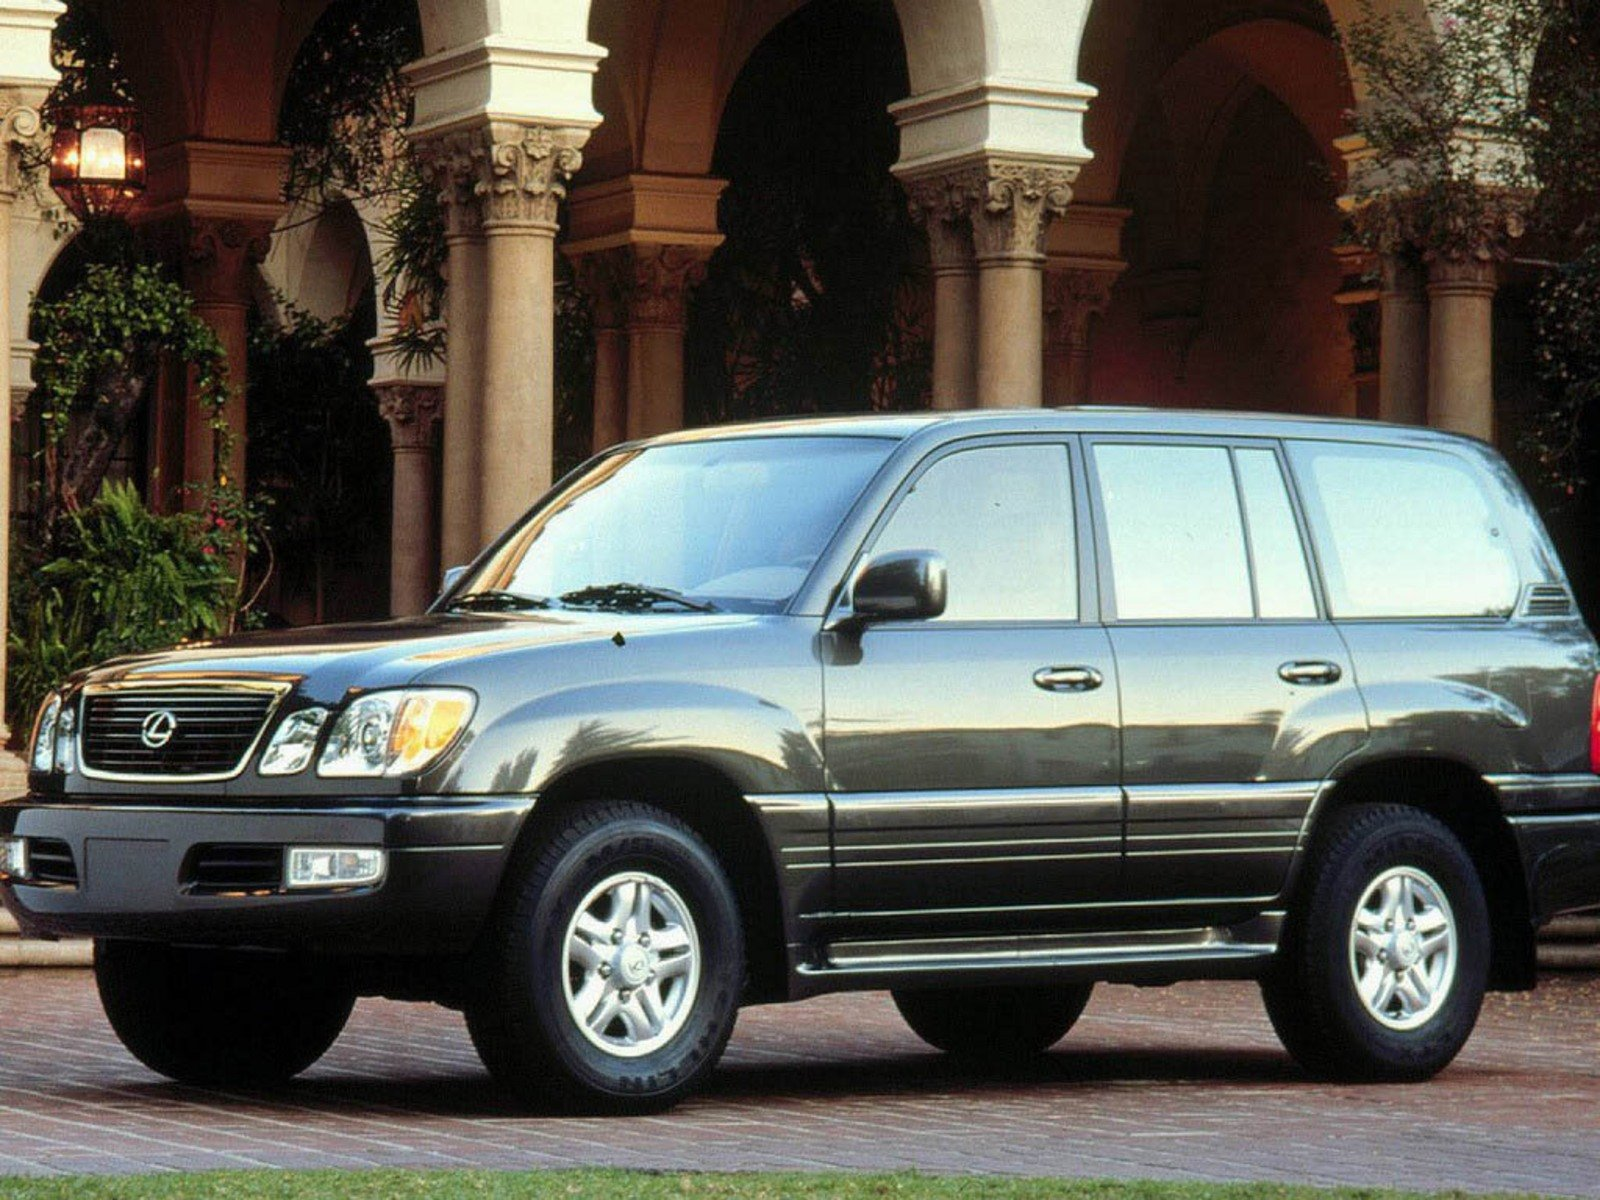 Tire Pressure Monitoring System >> 2006 Lexus Lx 470 Review - Top Speed